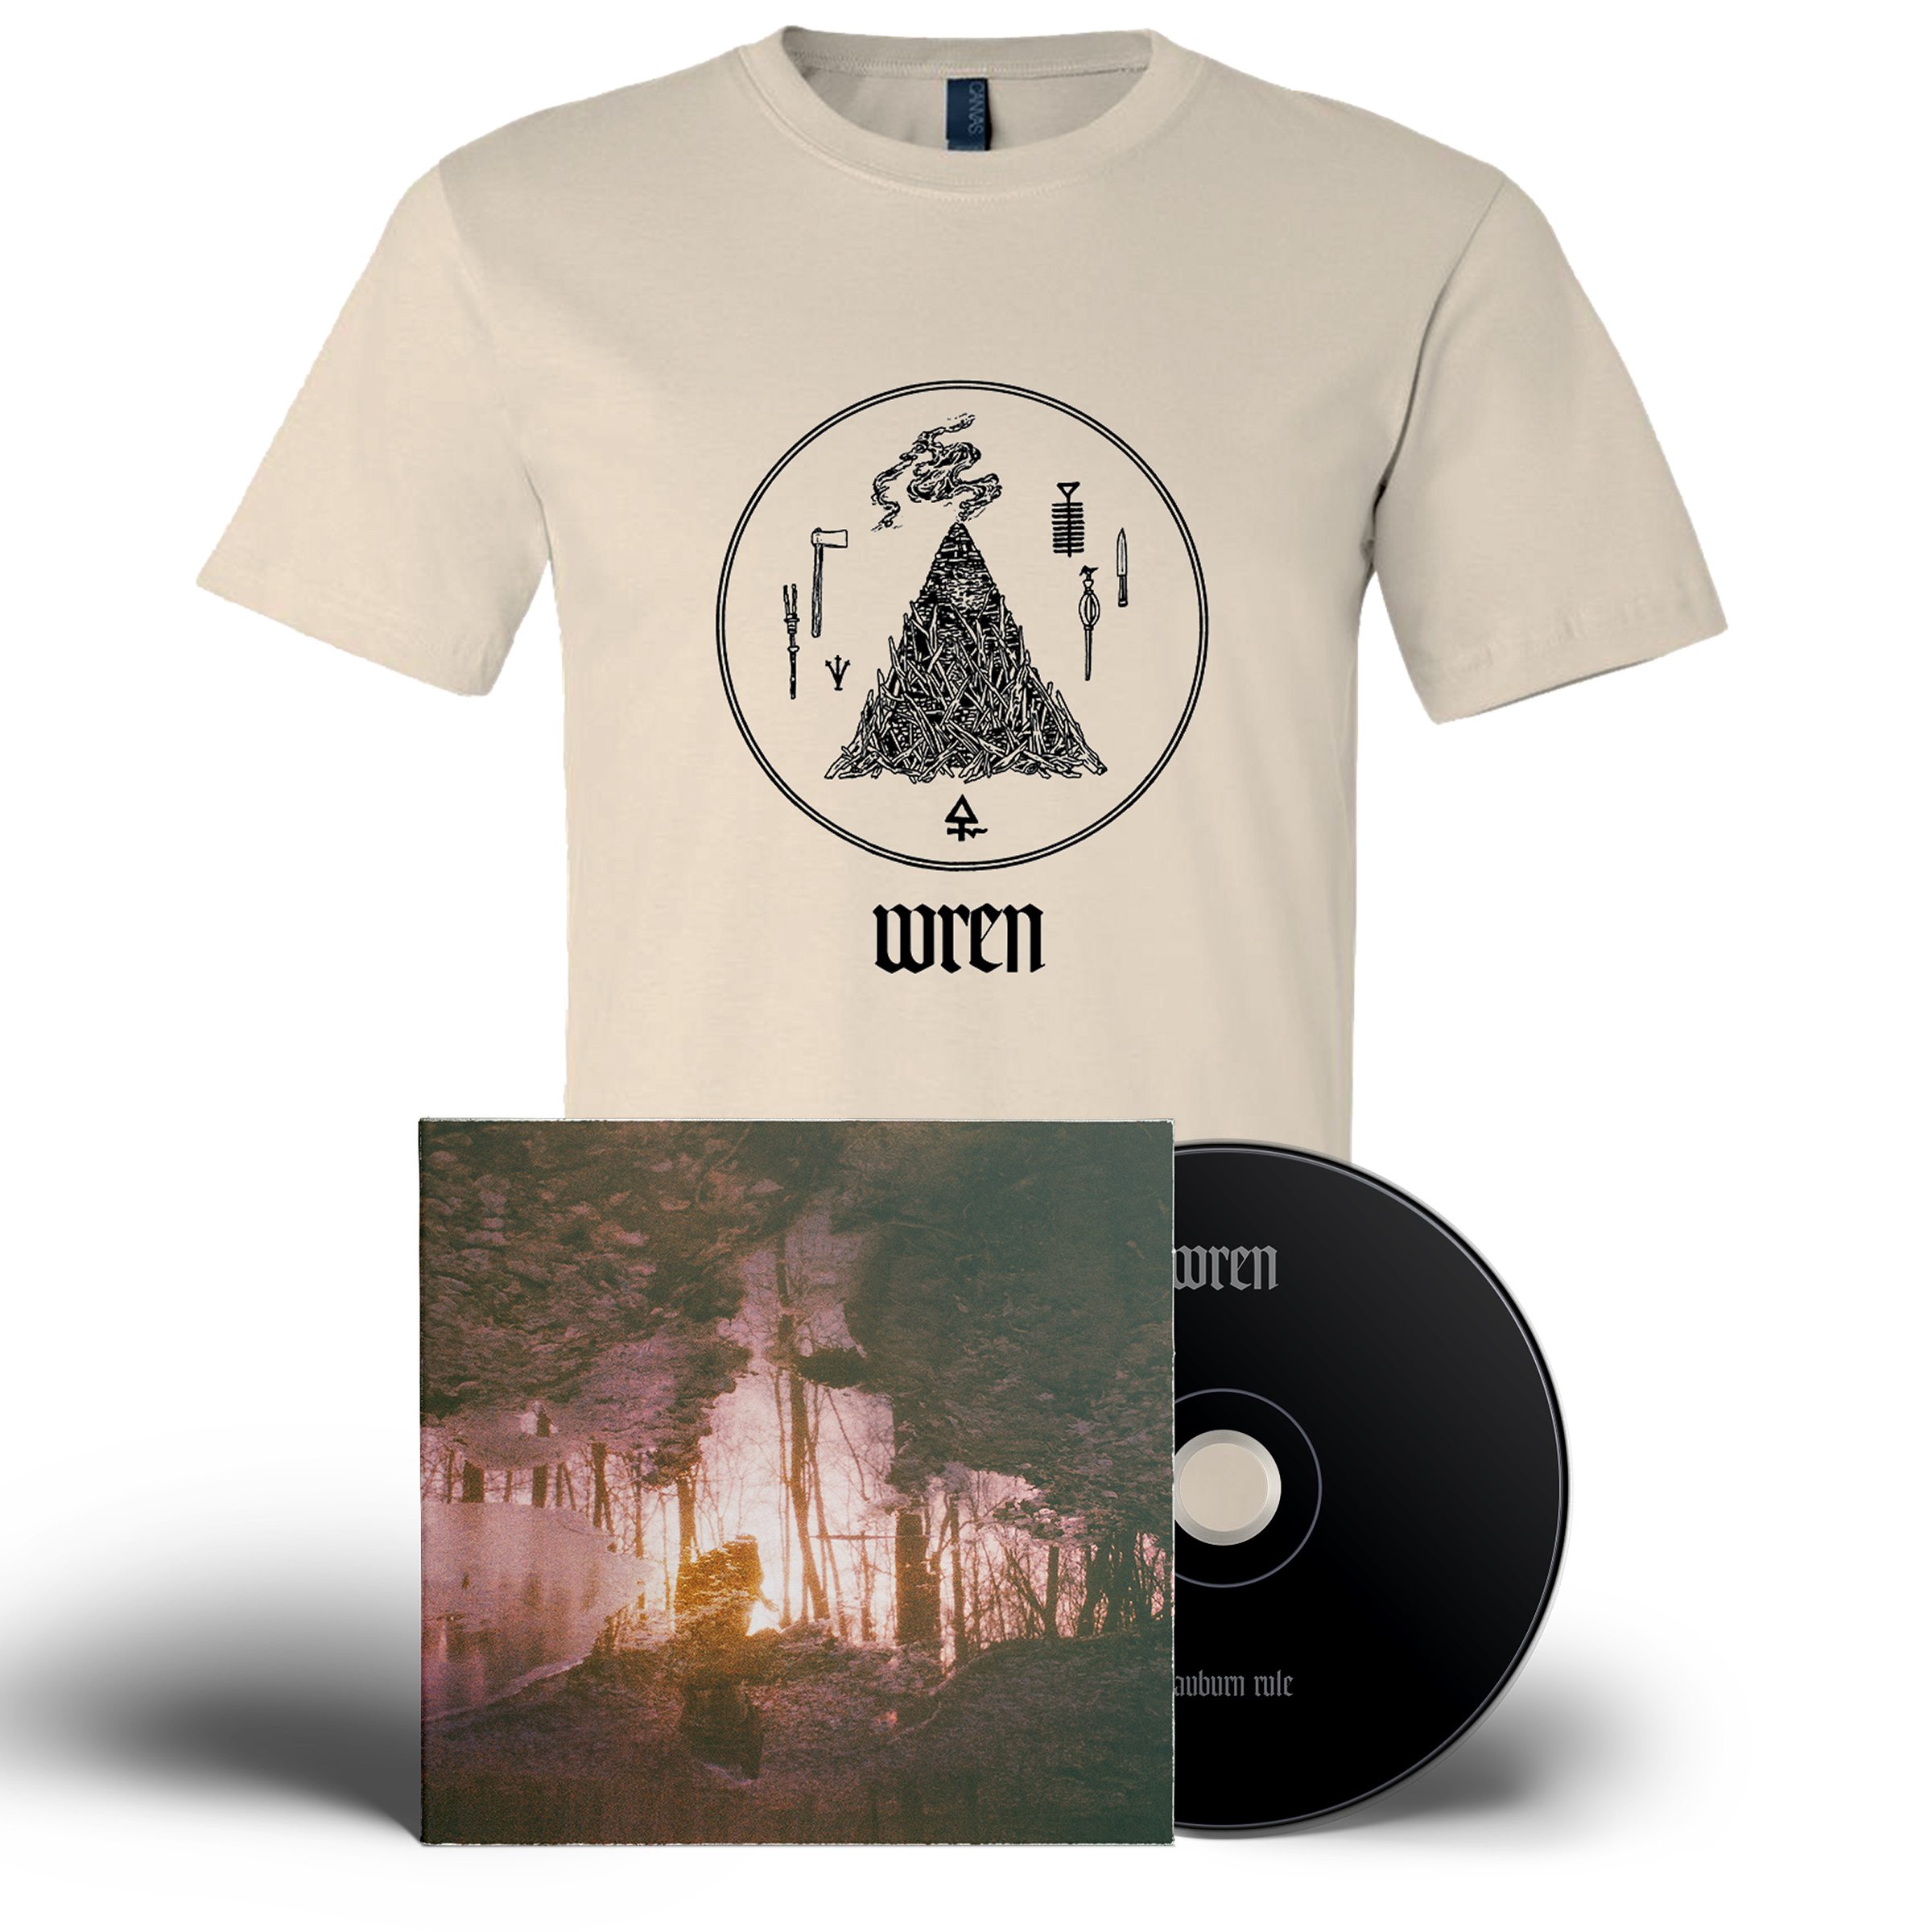 Wren - Auburn Rule CD + shirt